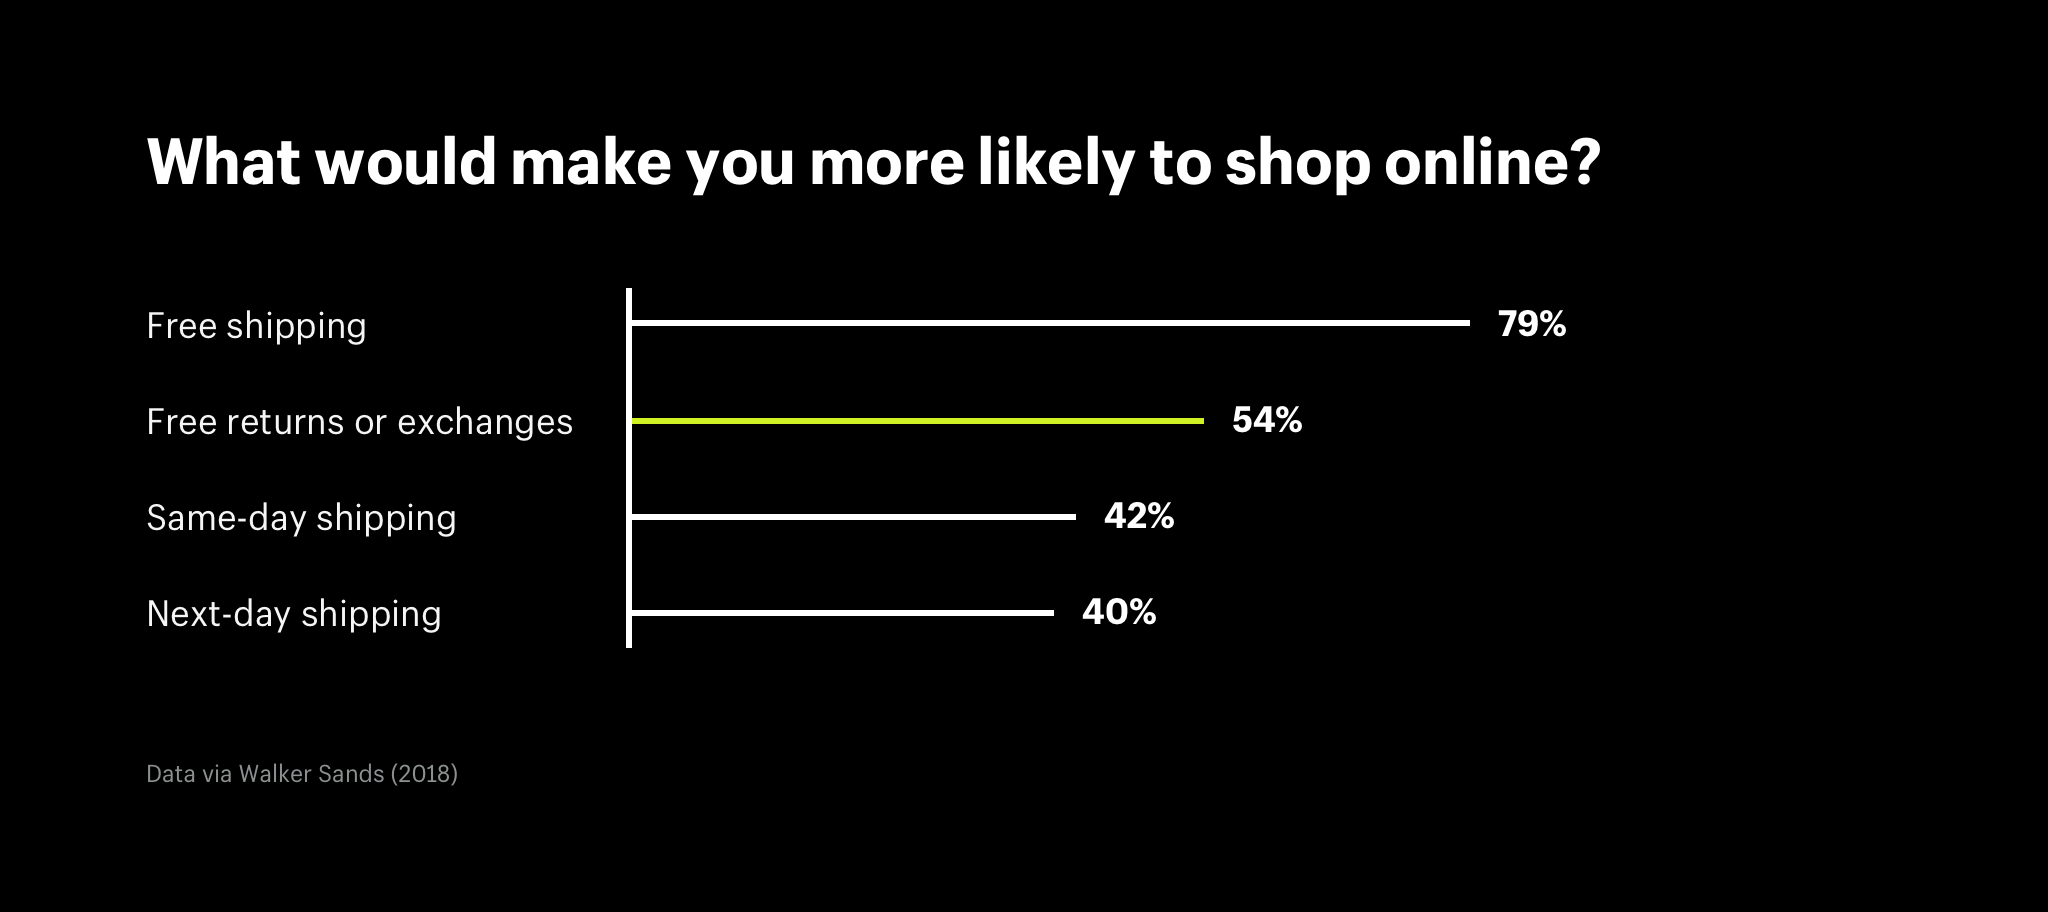 What would make you more likely to shop online?